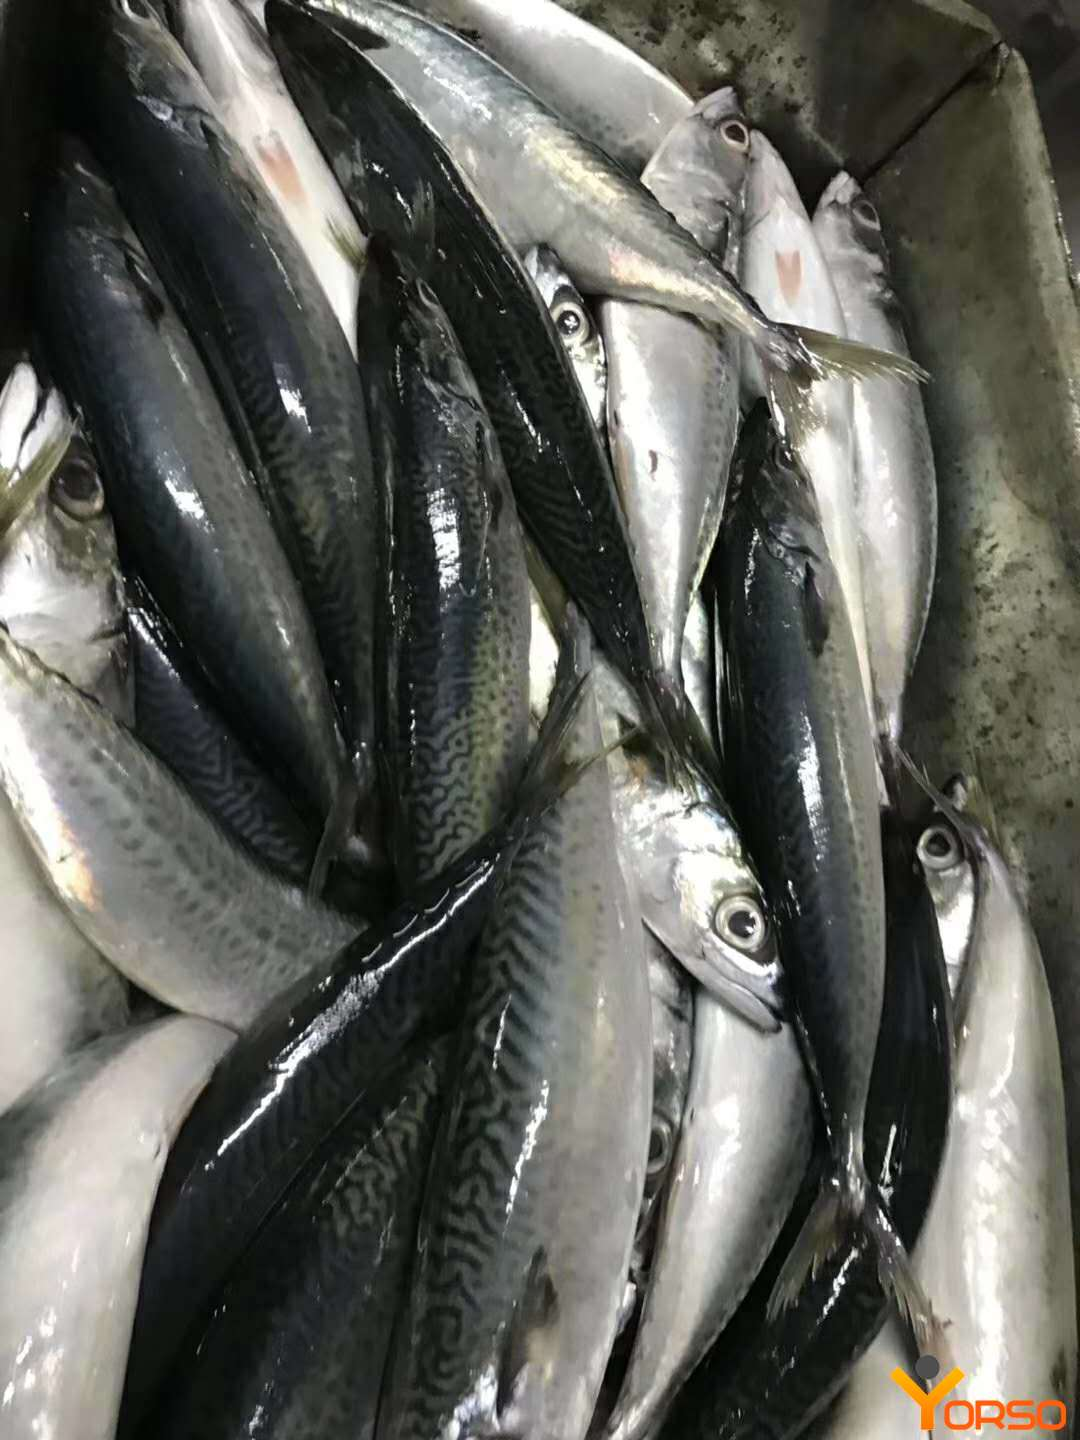 Mackerel carcass, 100-200, 95% net weight, BQF, 1/10